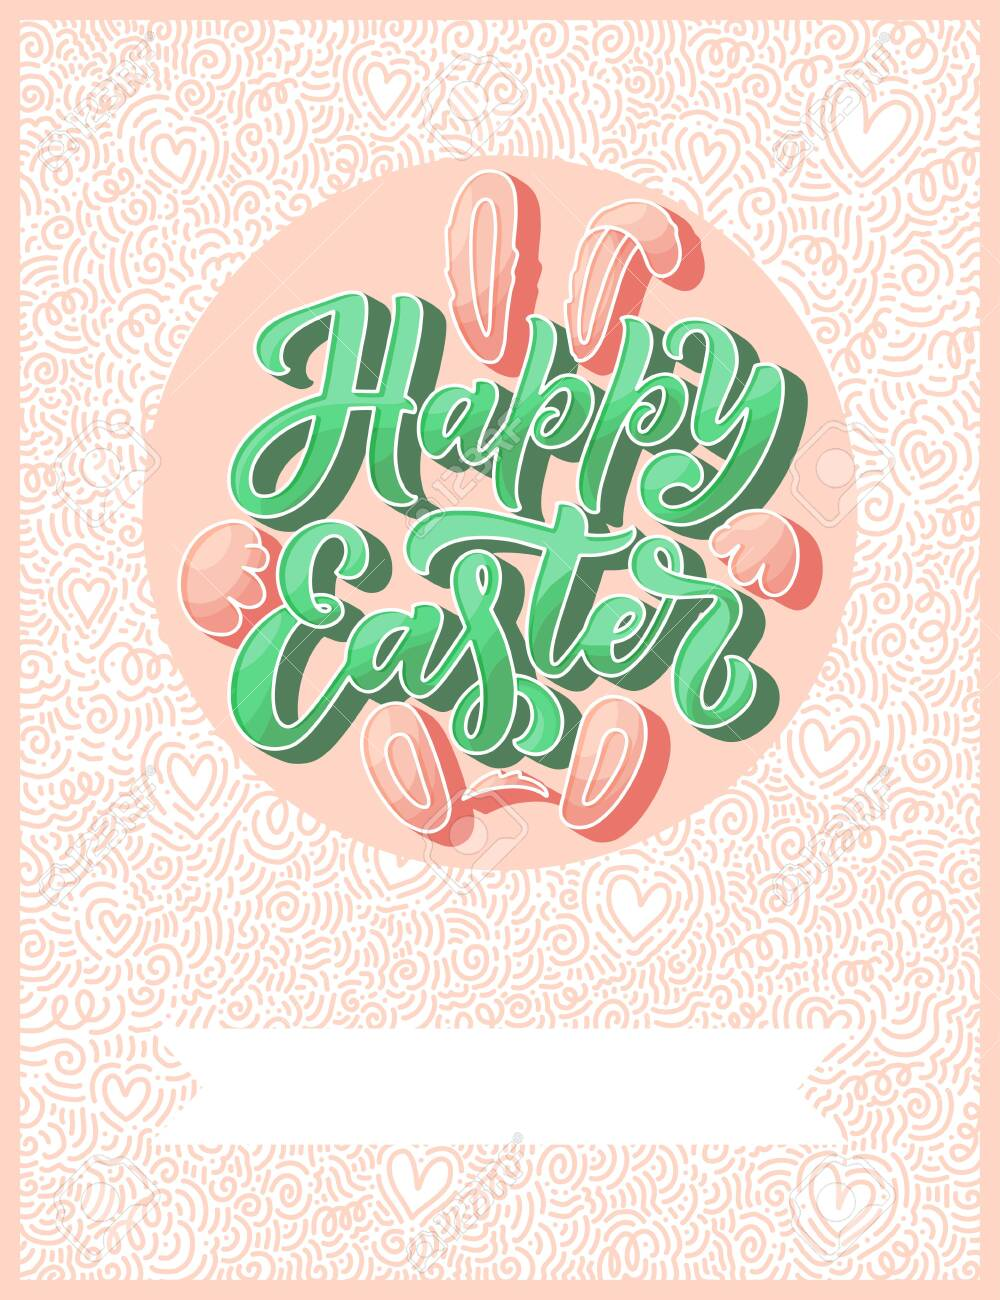 Calligraphy lettering for flyer design - Happy easter. Abstract vector illustration. Template banner, poster, greeting postcard. - 123642586